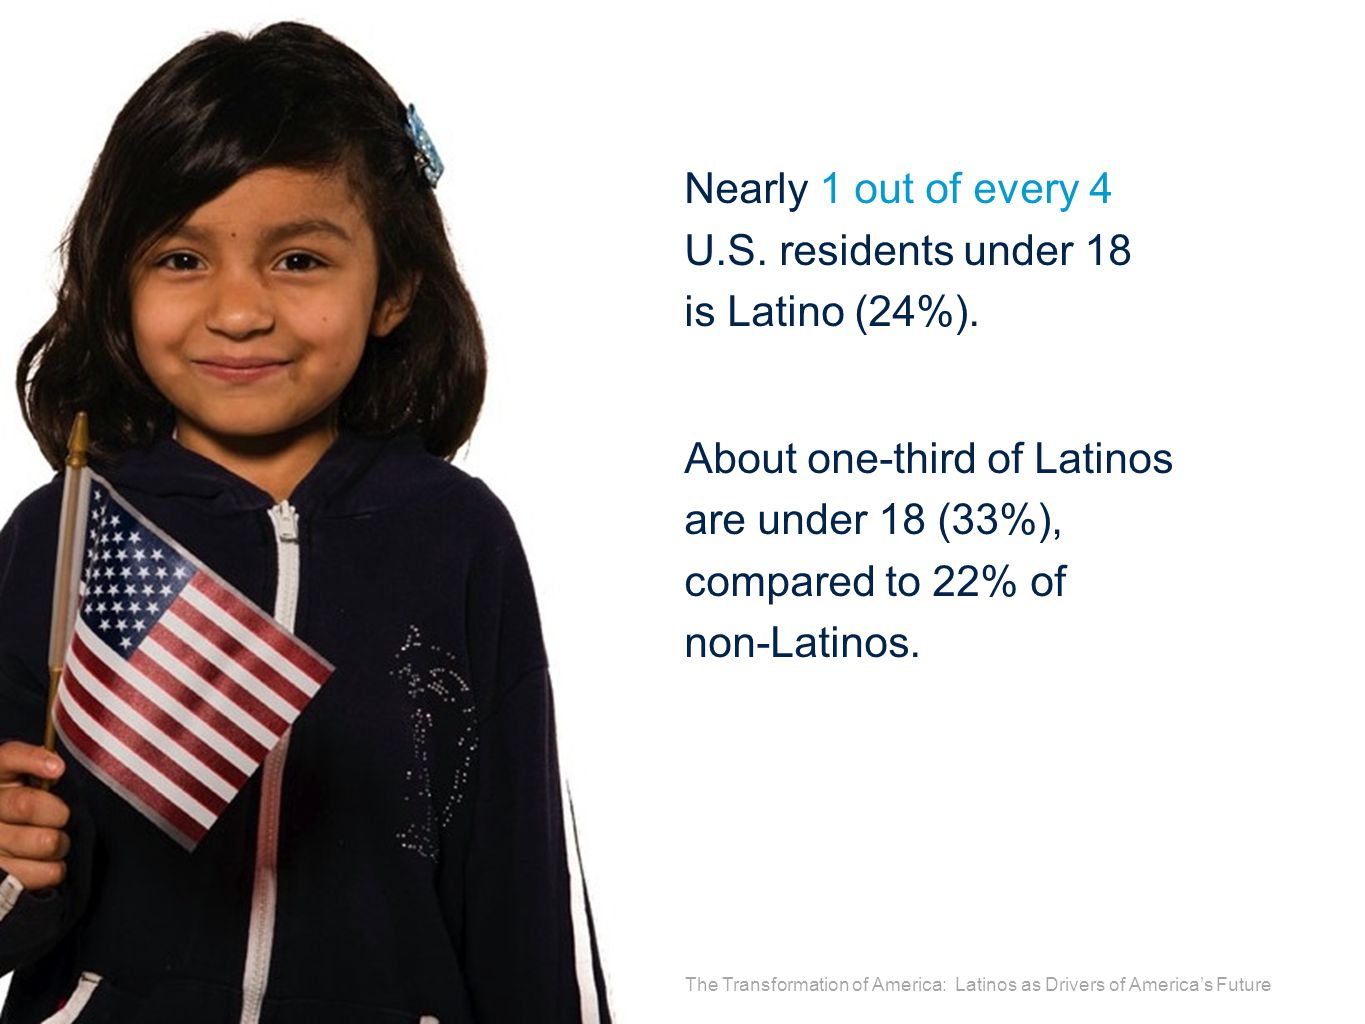 Nearly two-thirds (64%) of Latinos are native-born and more than one-third (36%) are foreign-born.